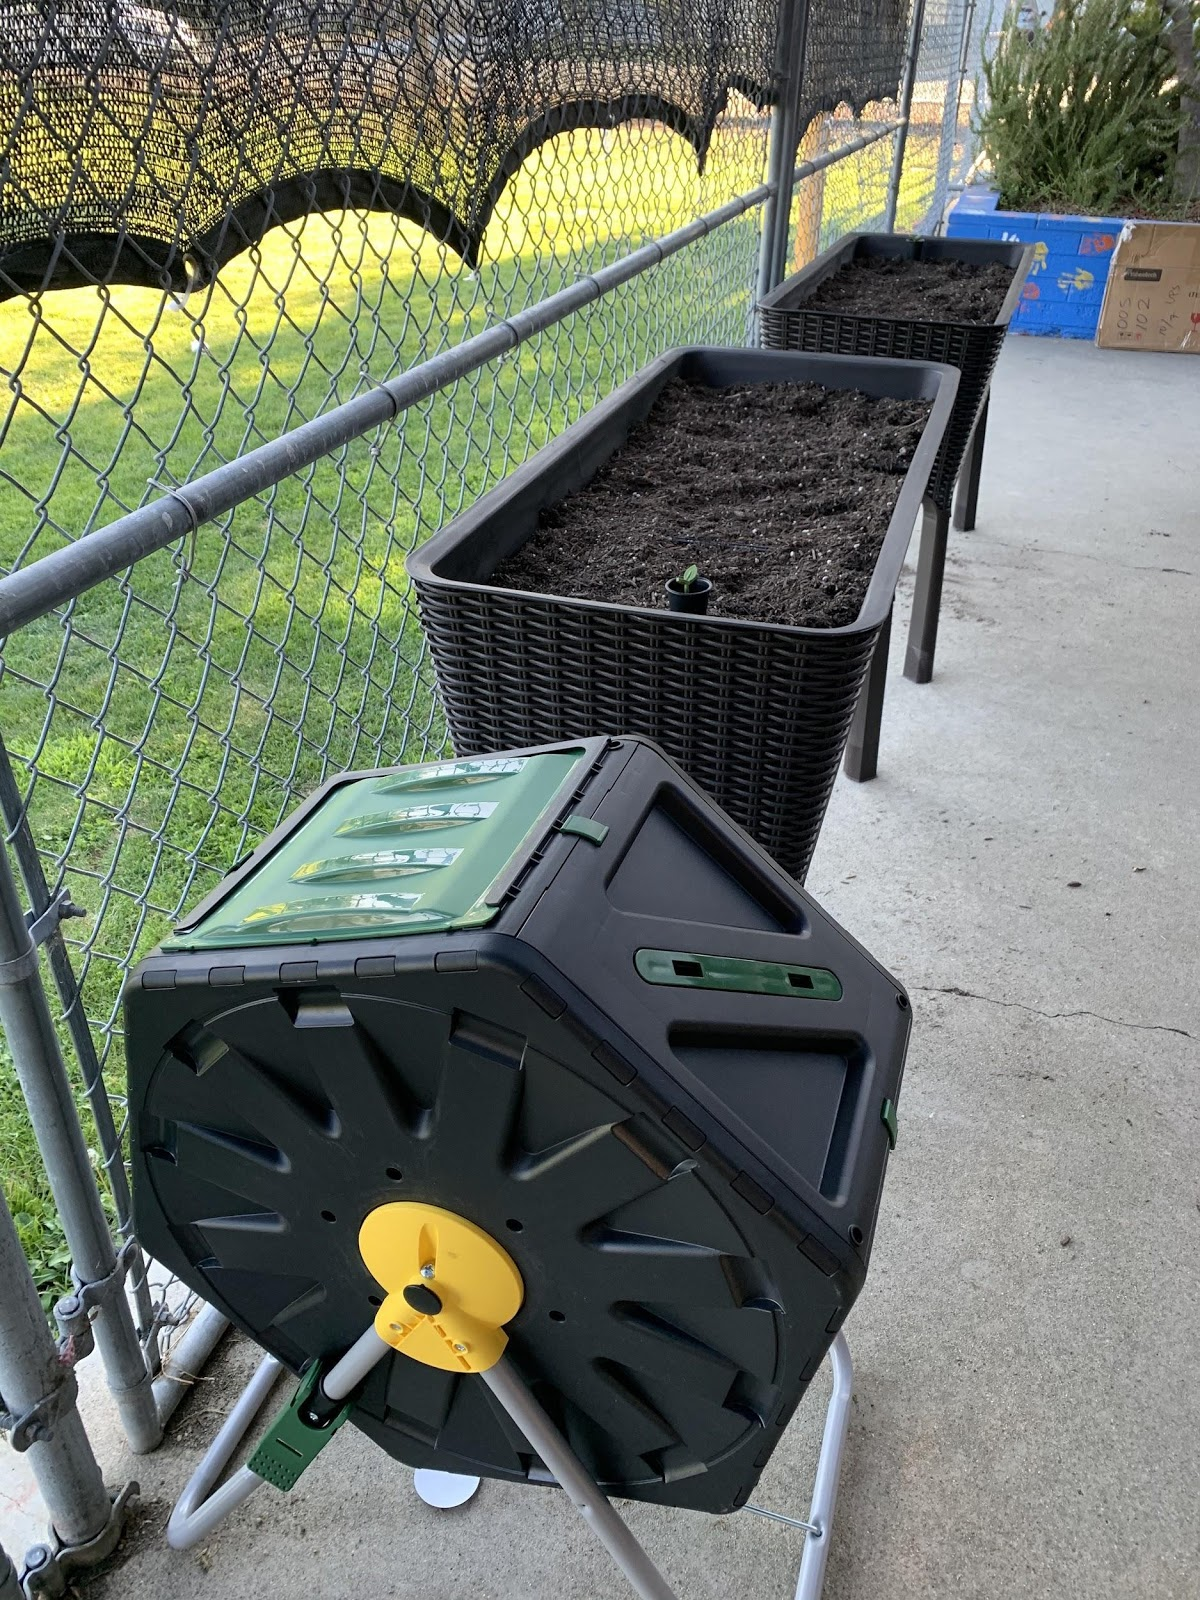 Compost Bins Installed At School Garden